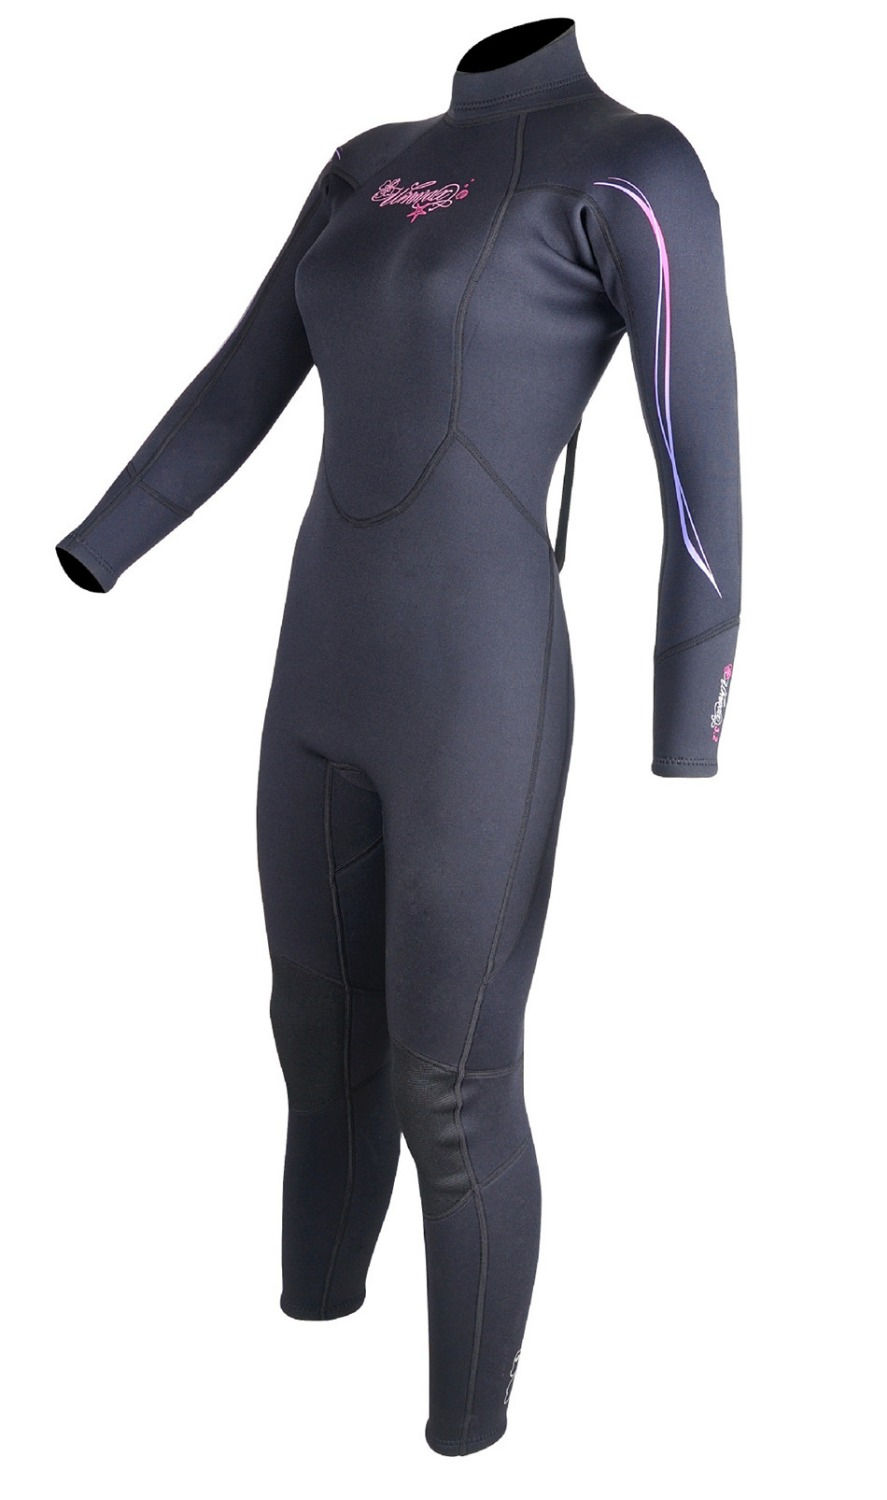 Professional Women Scuba Diving Suit 3mm Neoprene Lycra Clothes Windsurfing Coat Surfing Wetsuit Swimsuit Long Sleeve Rash Guard цена